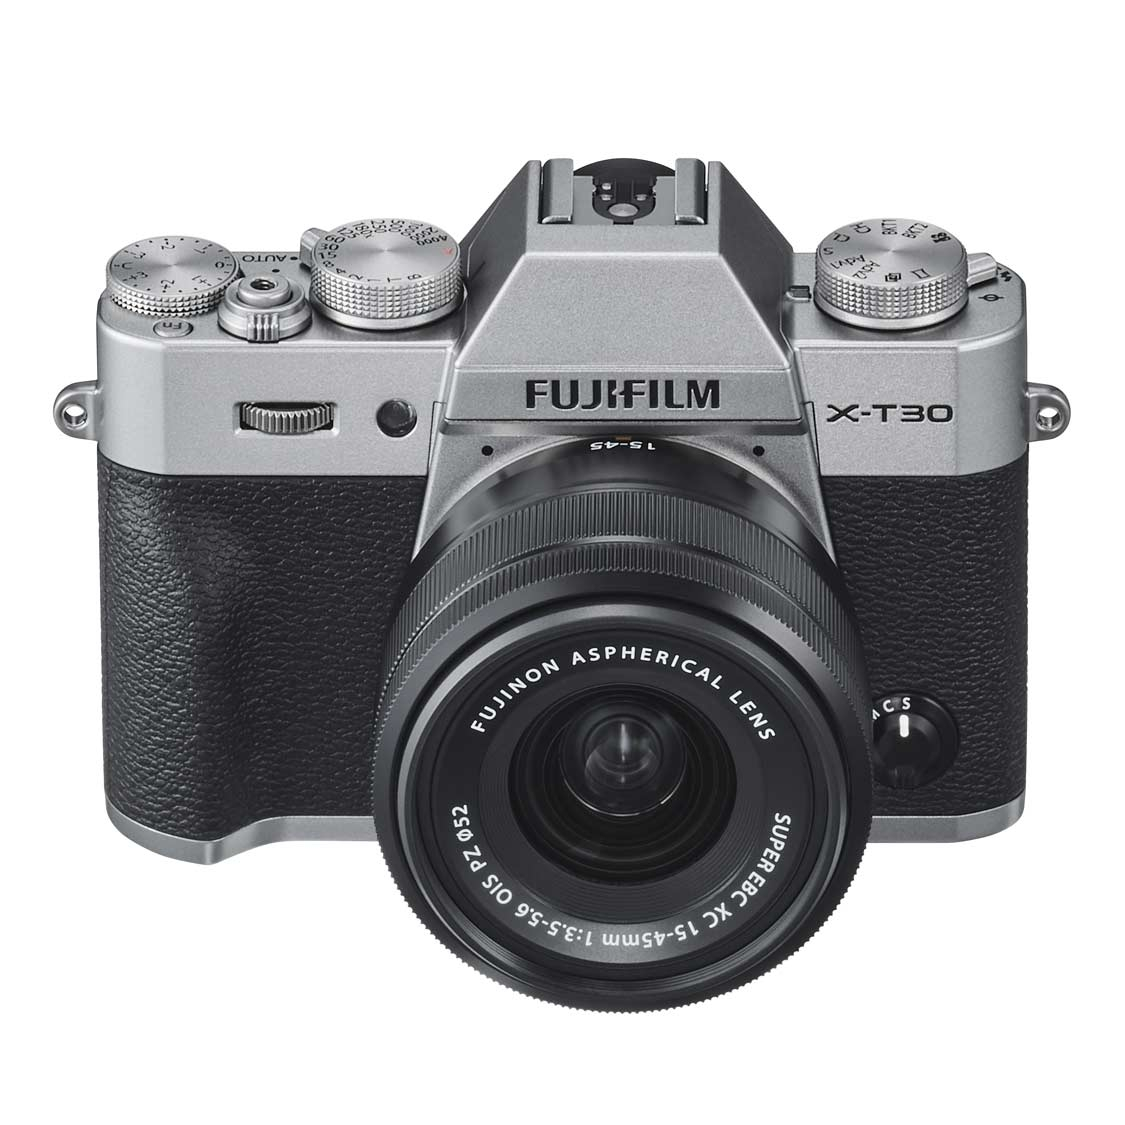 Fujifilm X-T30 Camera (silver) with 15-45mm f3.5-5.6 Lens